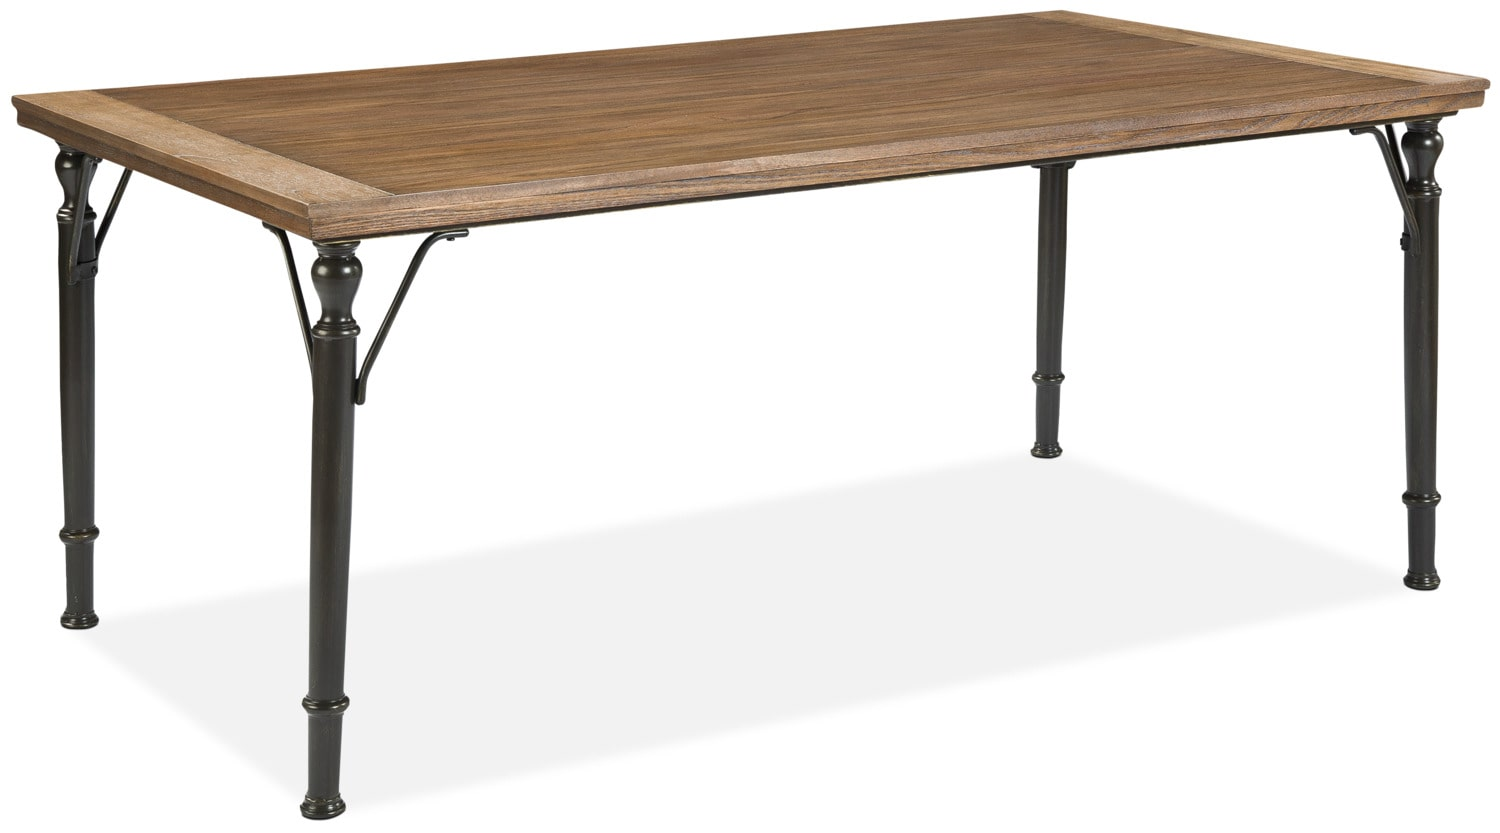 Dining Room Furniture - Tripton Dining Table